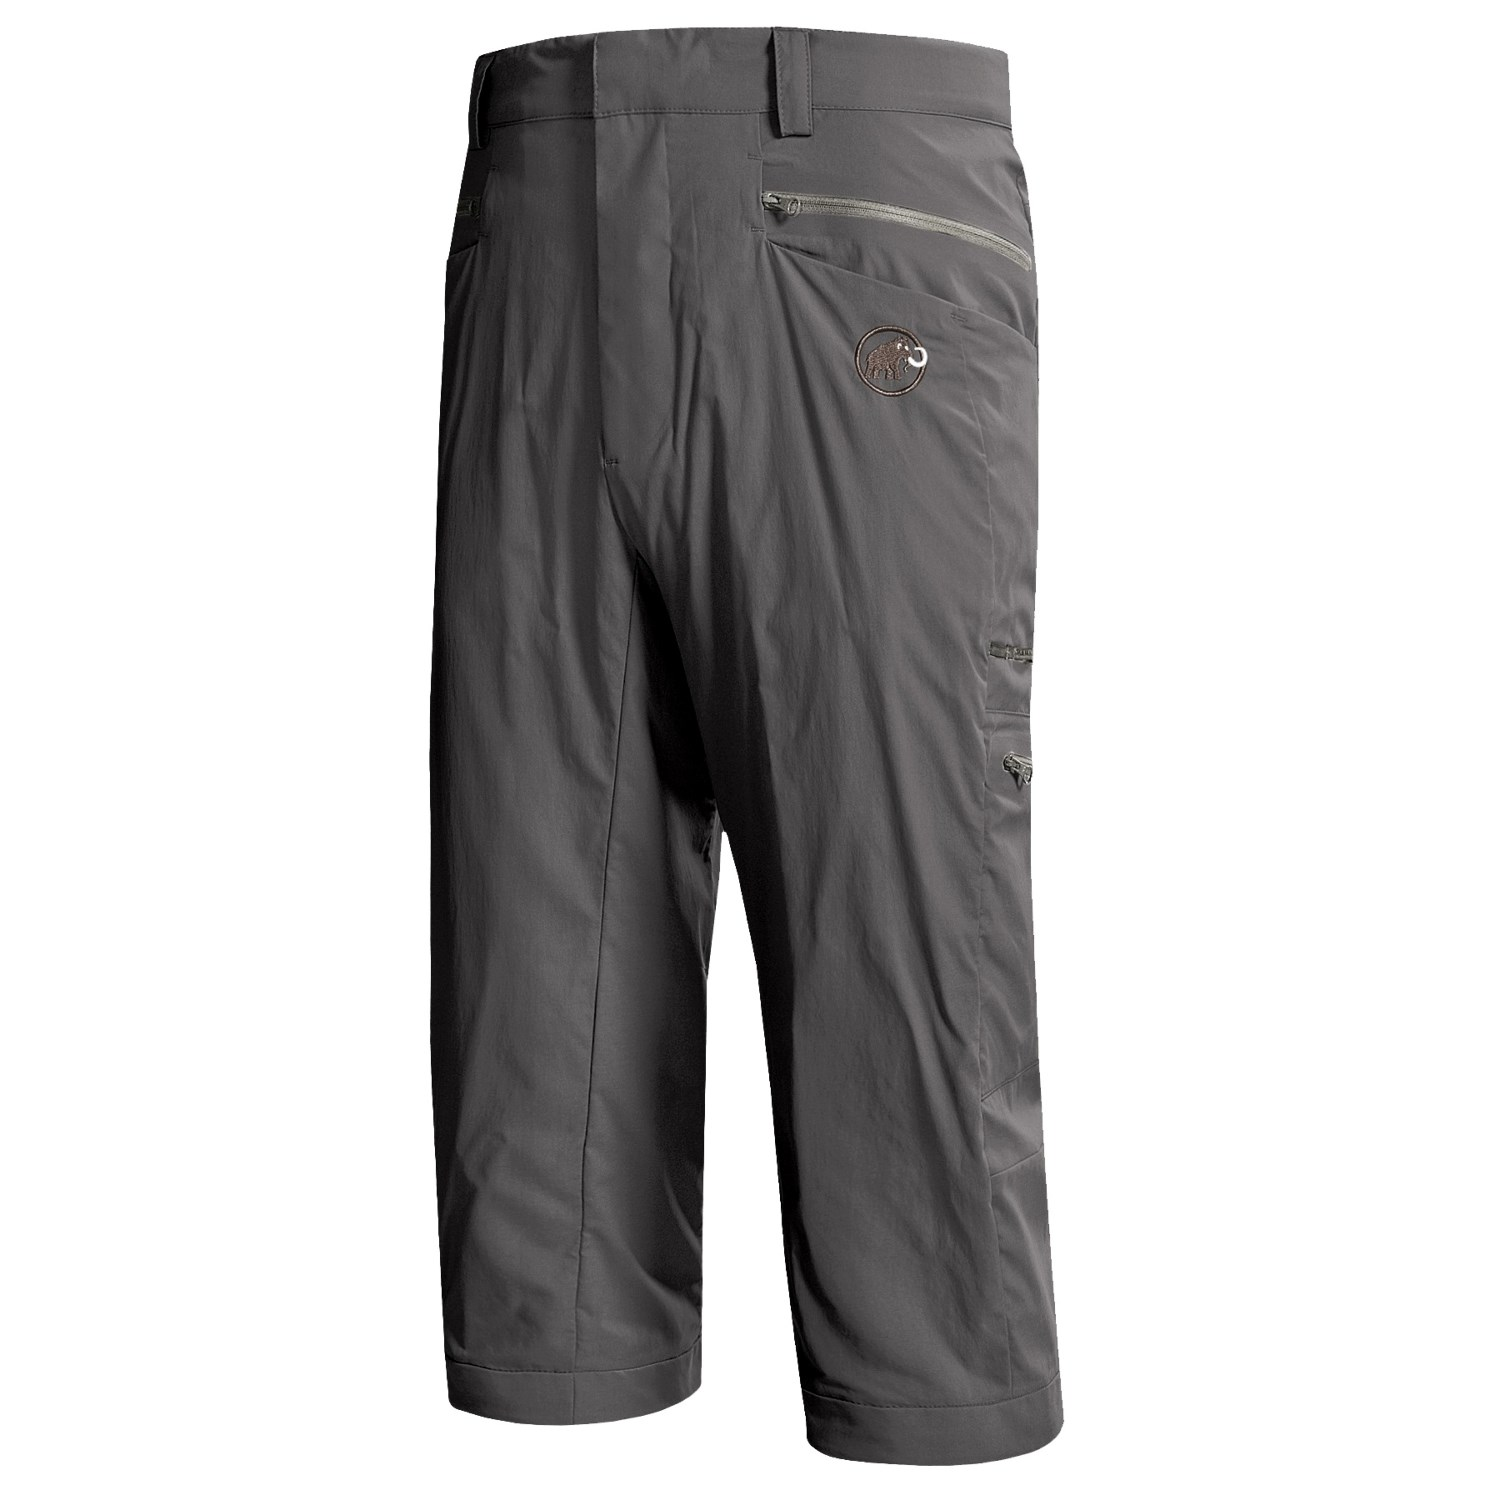 Main page» LATEX FOR MEN» Three Quarter Pants. Three Quarter Pants. 3/4 Pants: Carpenter. Three-quarte length carpenter pants with all-around zipper from ,00 EUR Three-quarter fashion pants with stripes, braces, and an all-around zipper from ,00 EUR.